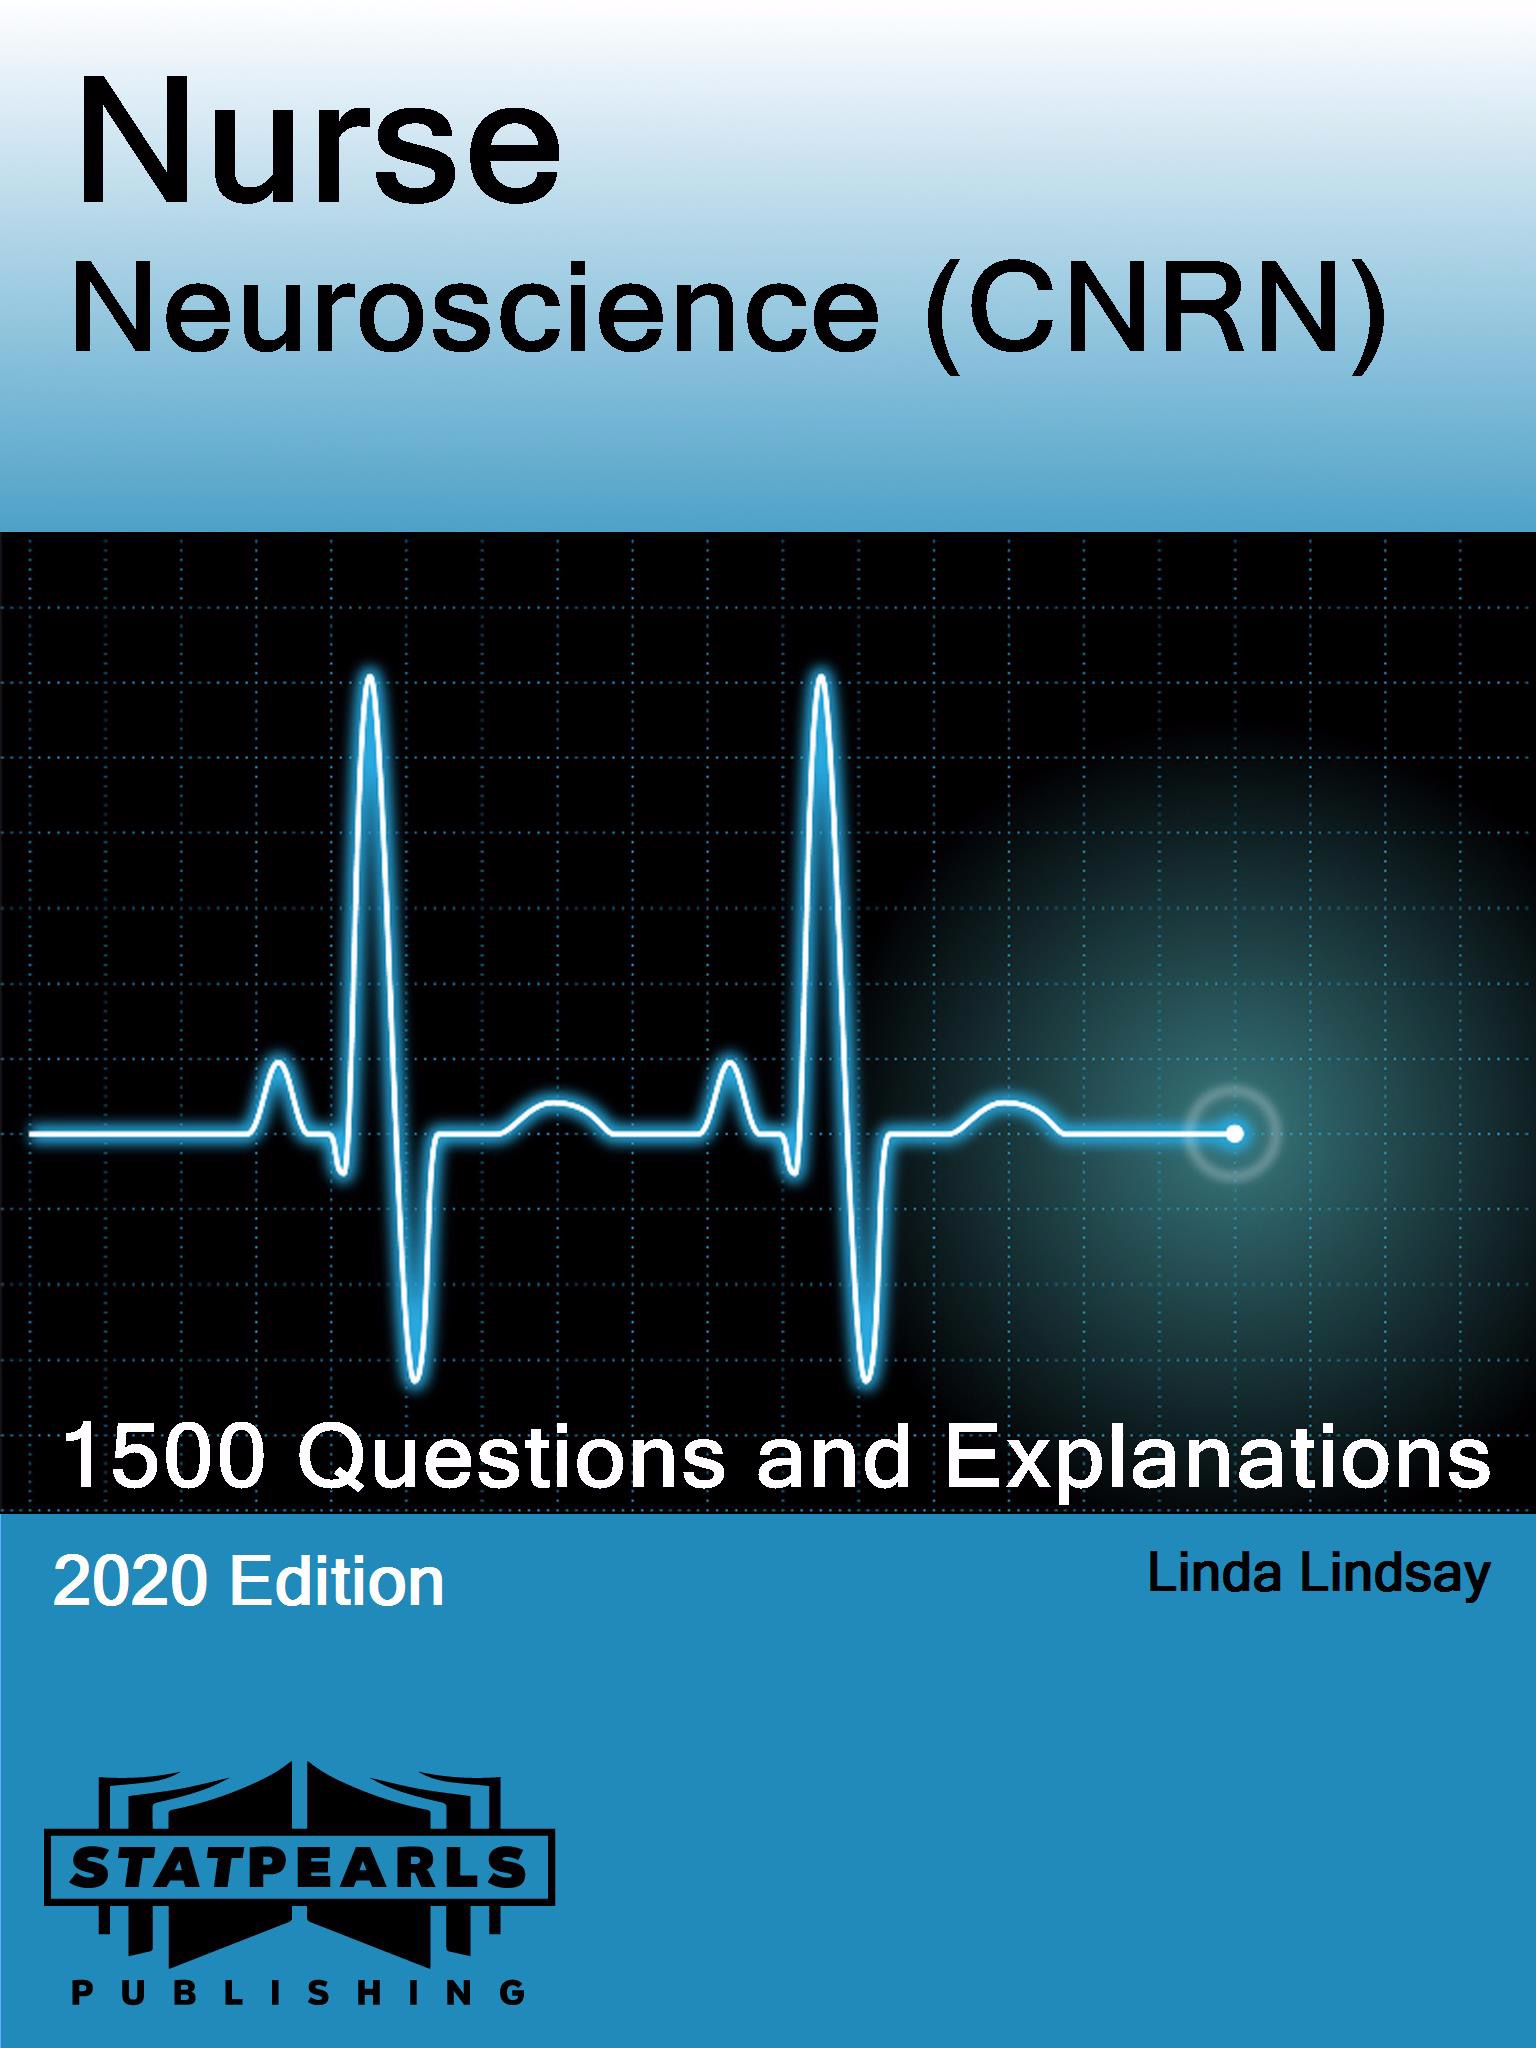 Nurse Neuroscience (CNRN)